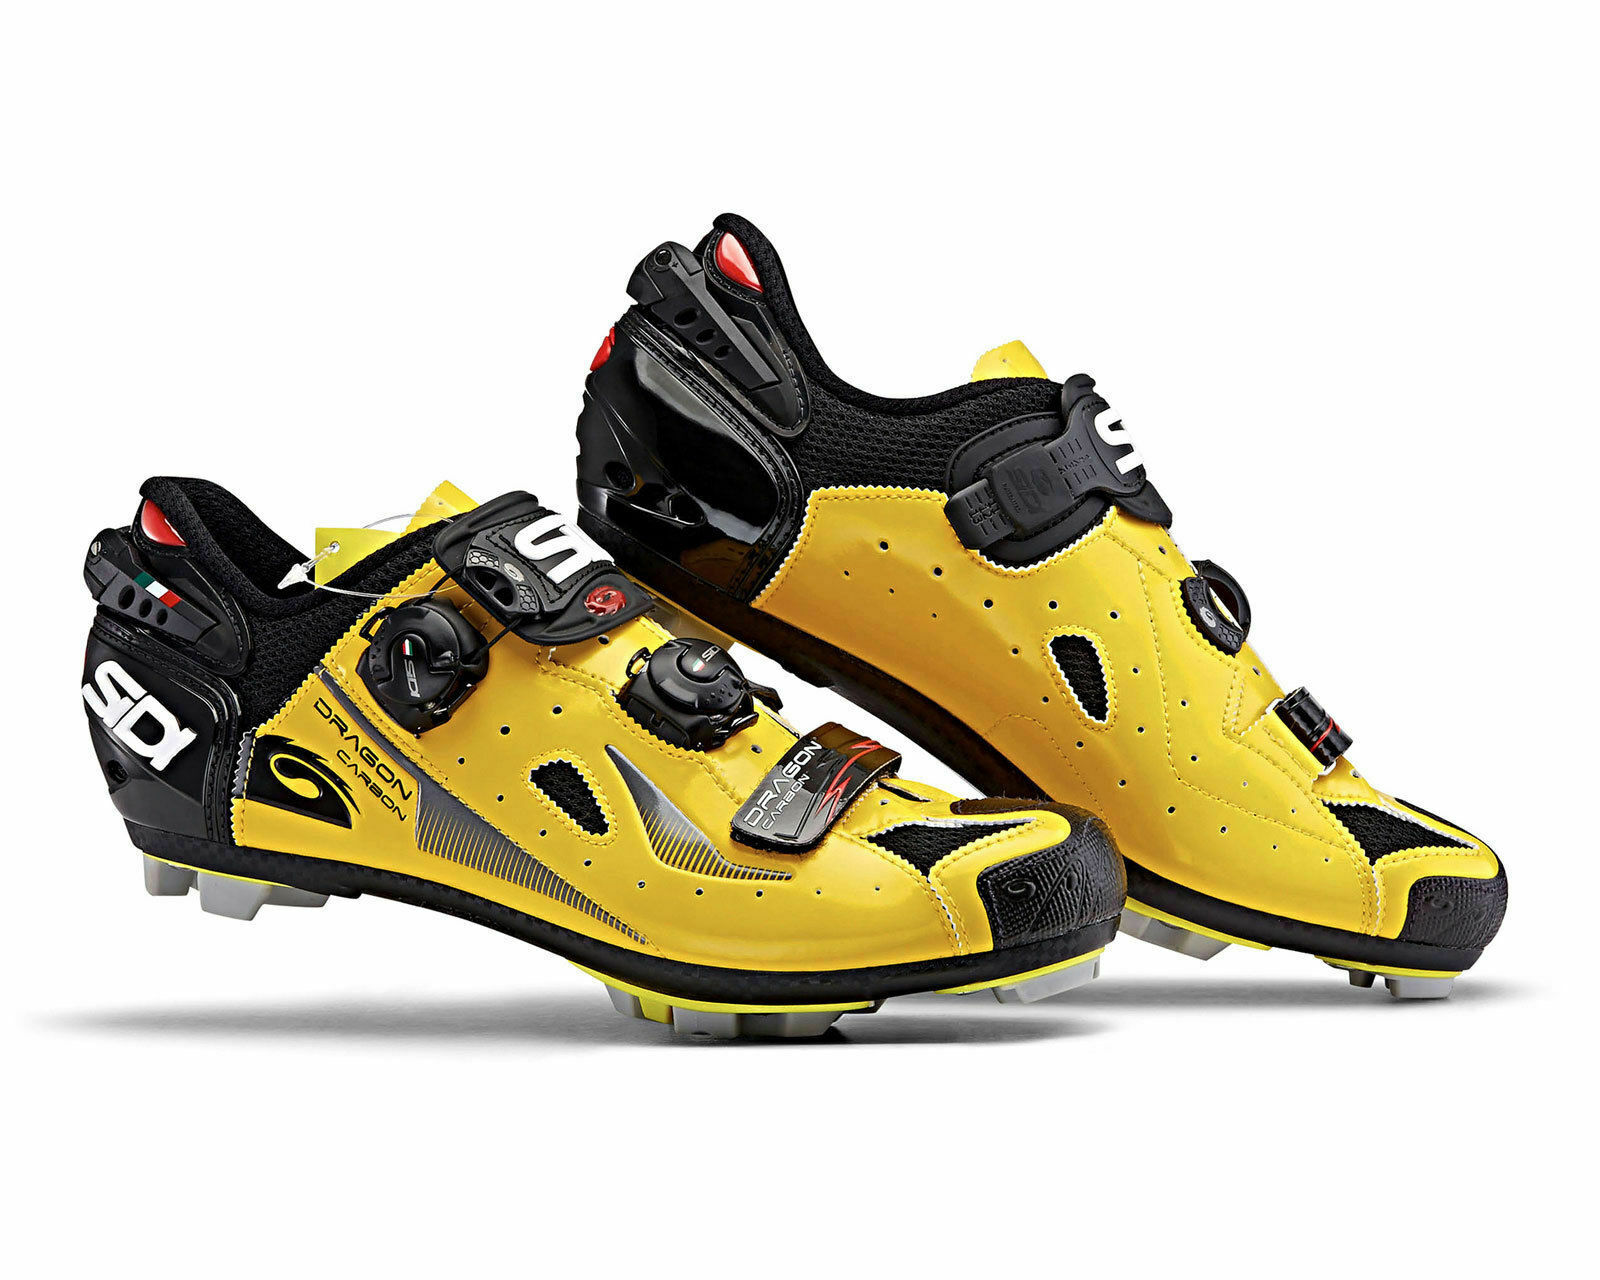 [SIDI] Dragon 4 Road Bike Bicycle Cycling scarpe nero-giallo